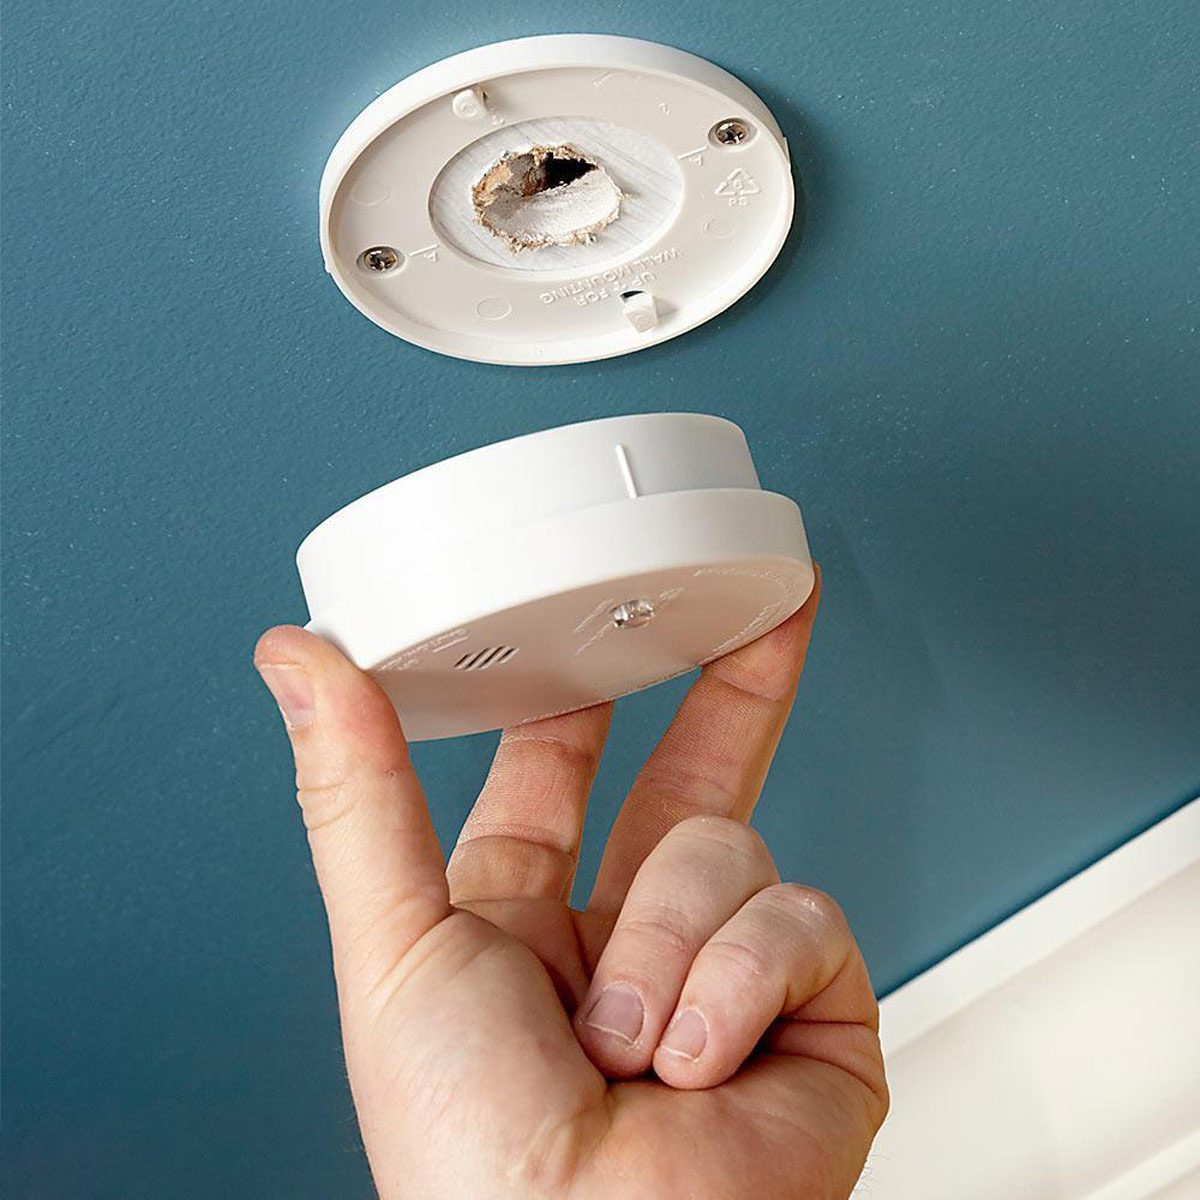 test and replace batteries in smoke detectors